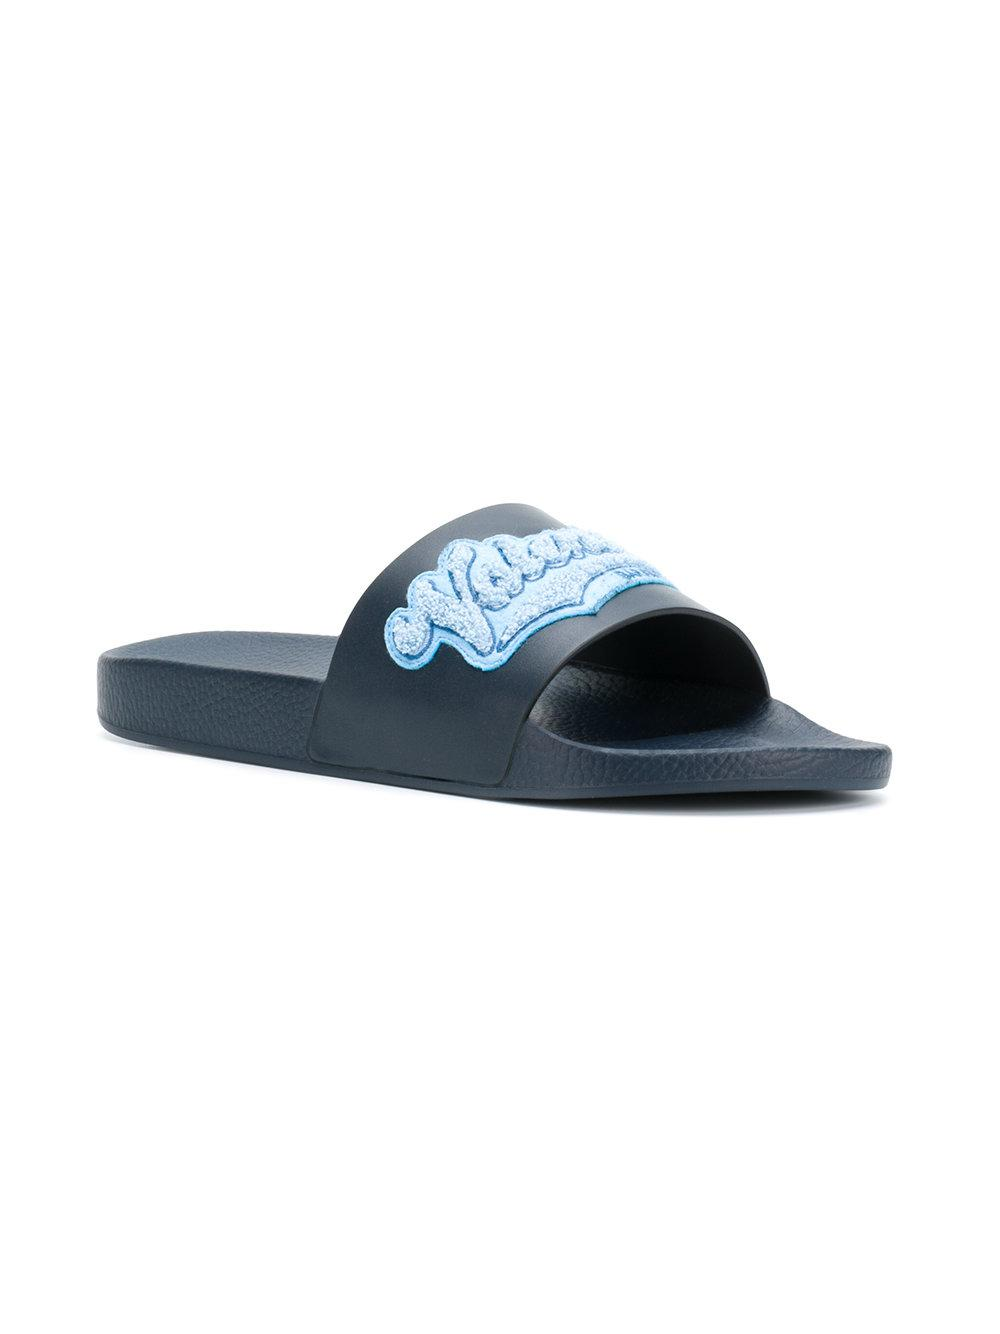 17ad2596292 Valentino Garavani Appliqué Slides in Blue for Men - Save  16.402116402116405% - Lyst